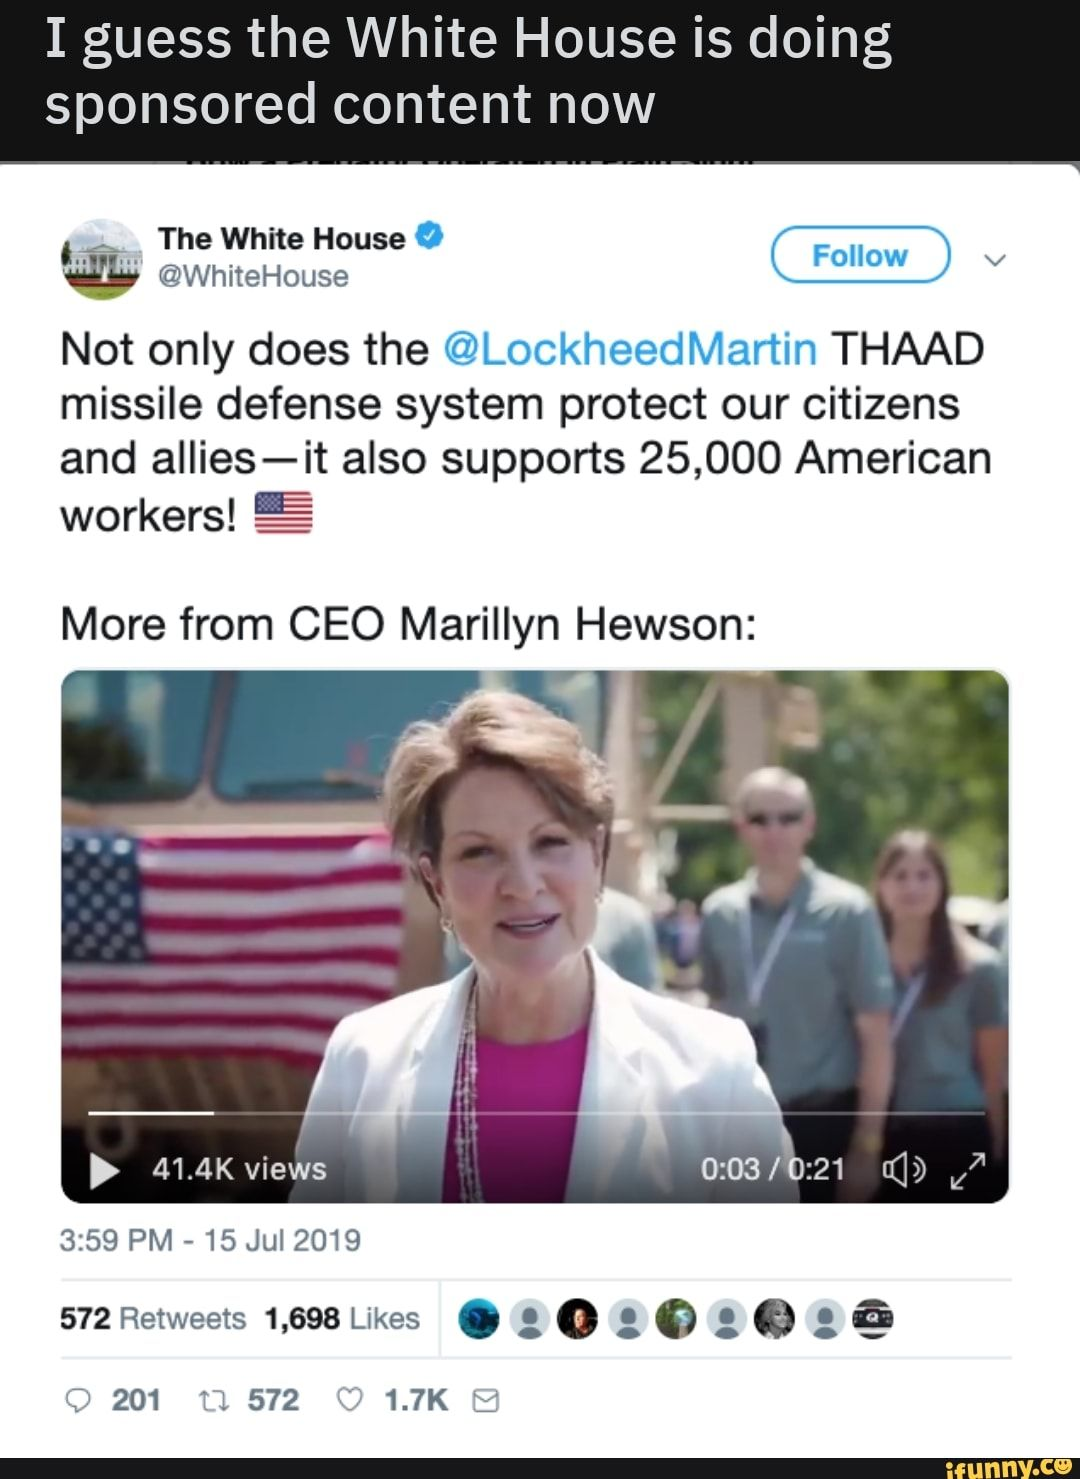 Picture memes HtBWk1Js6: 1 comment — iFunny I guess the White House is doing sponsored content now - CW @WhiteHouse Not only does the @LockheedMarTin THAAD missile defense system protect our citizens and allies-it also supports 25,000 American workers! % More from CEO Marillyn Hewson: – popular memes on the site